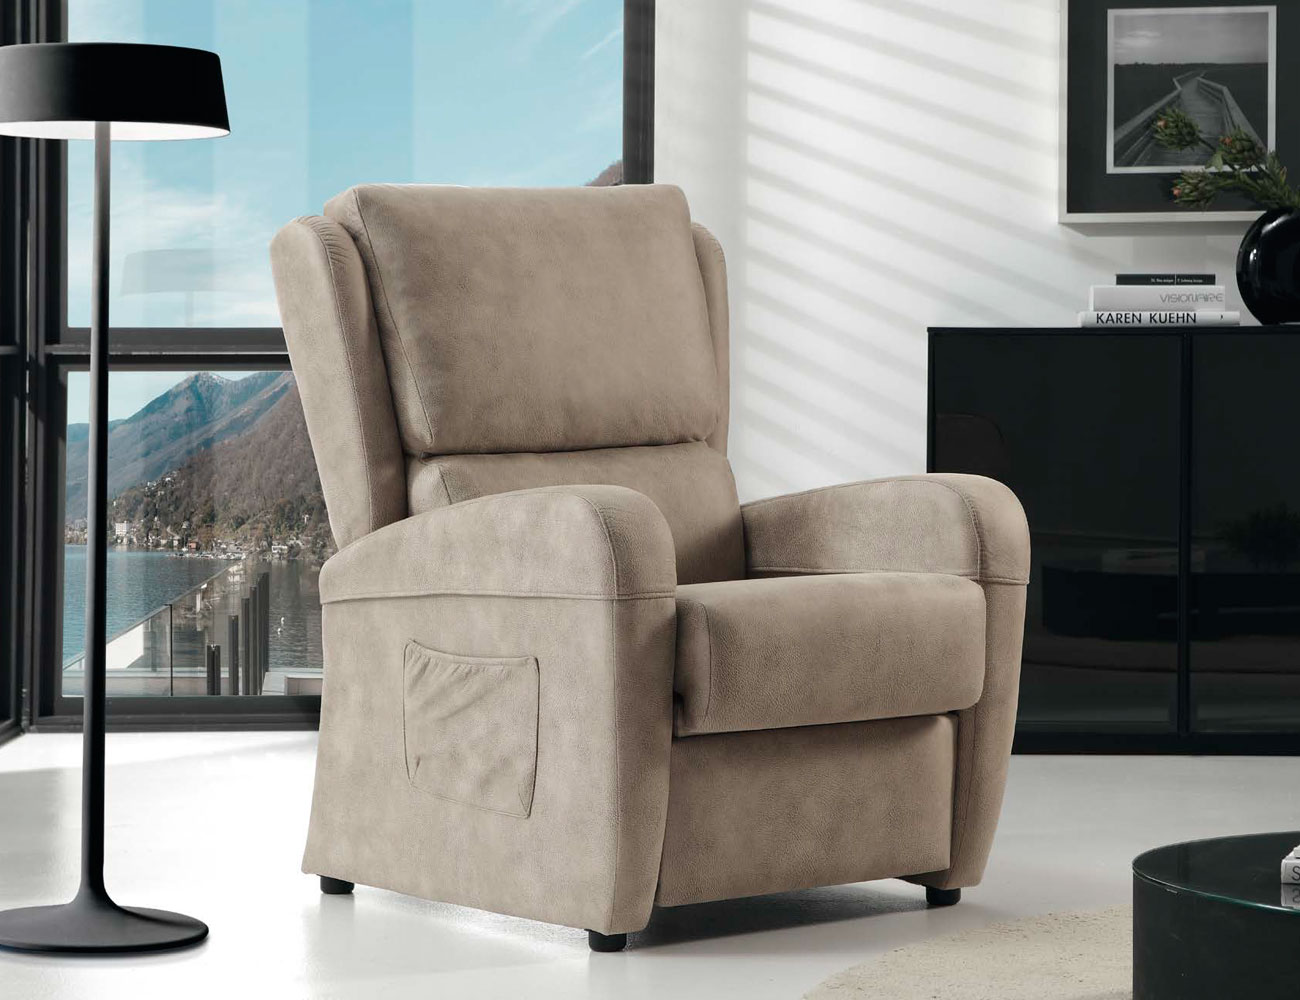 Sillon relax manual jana